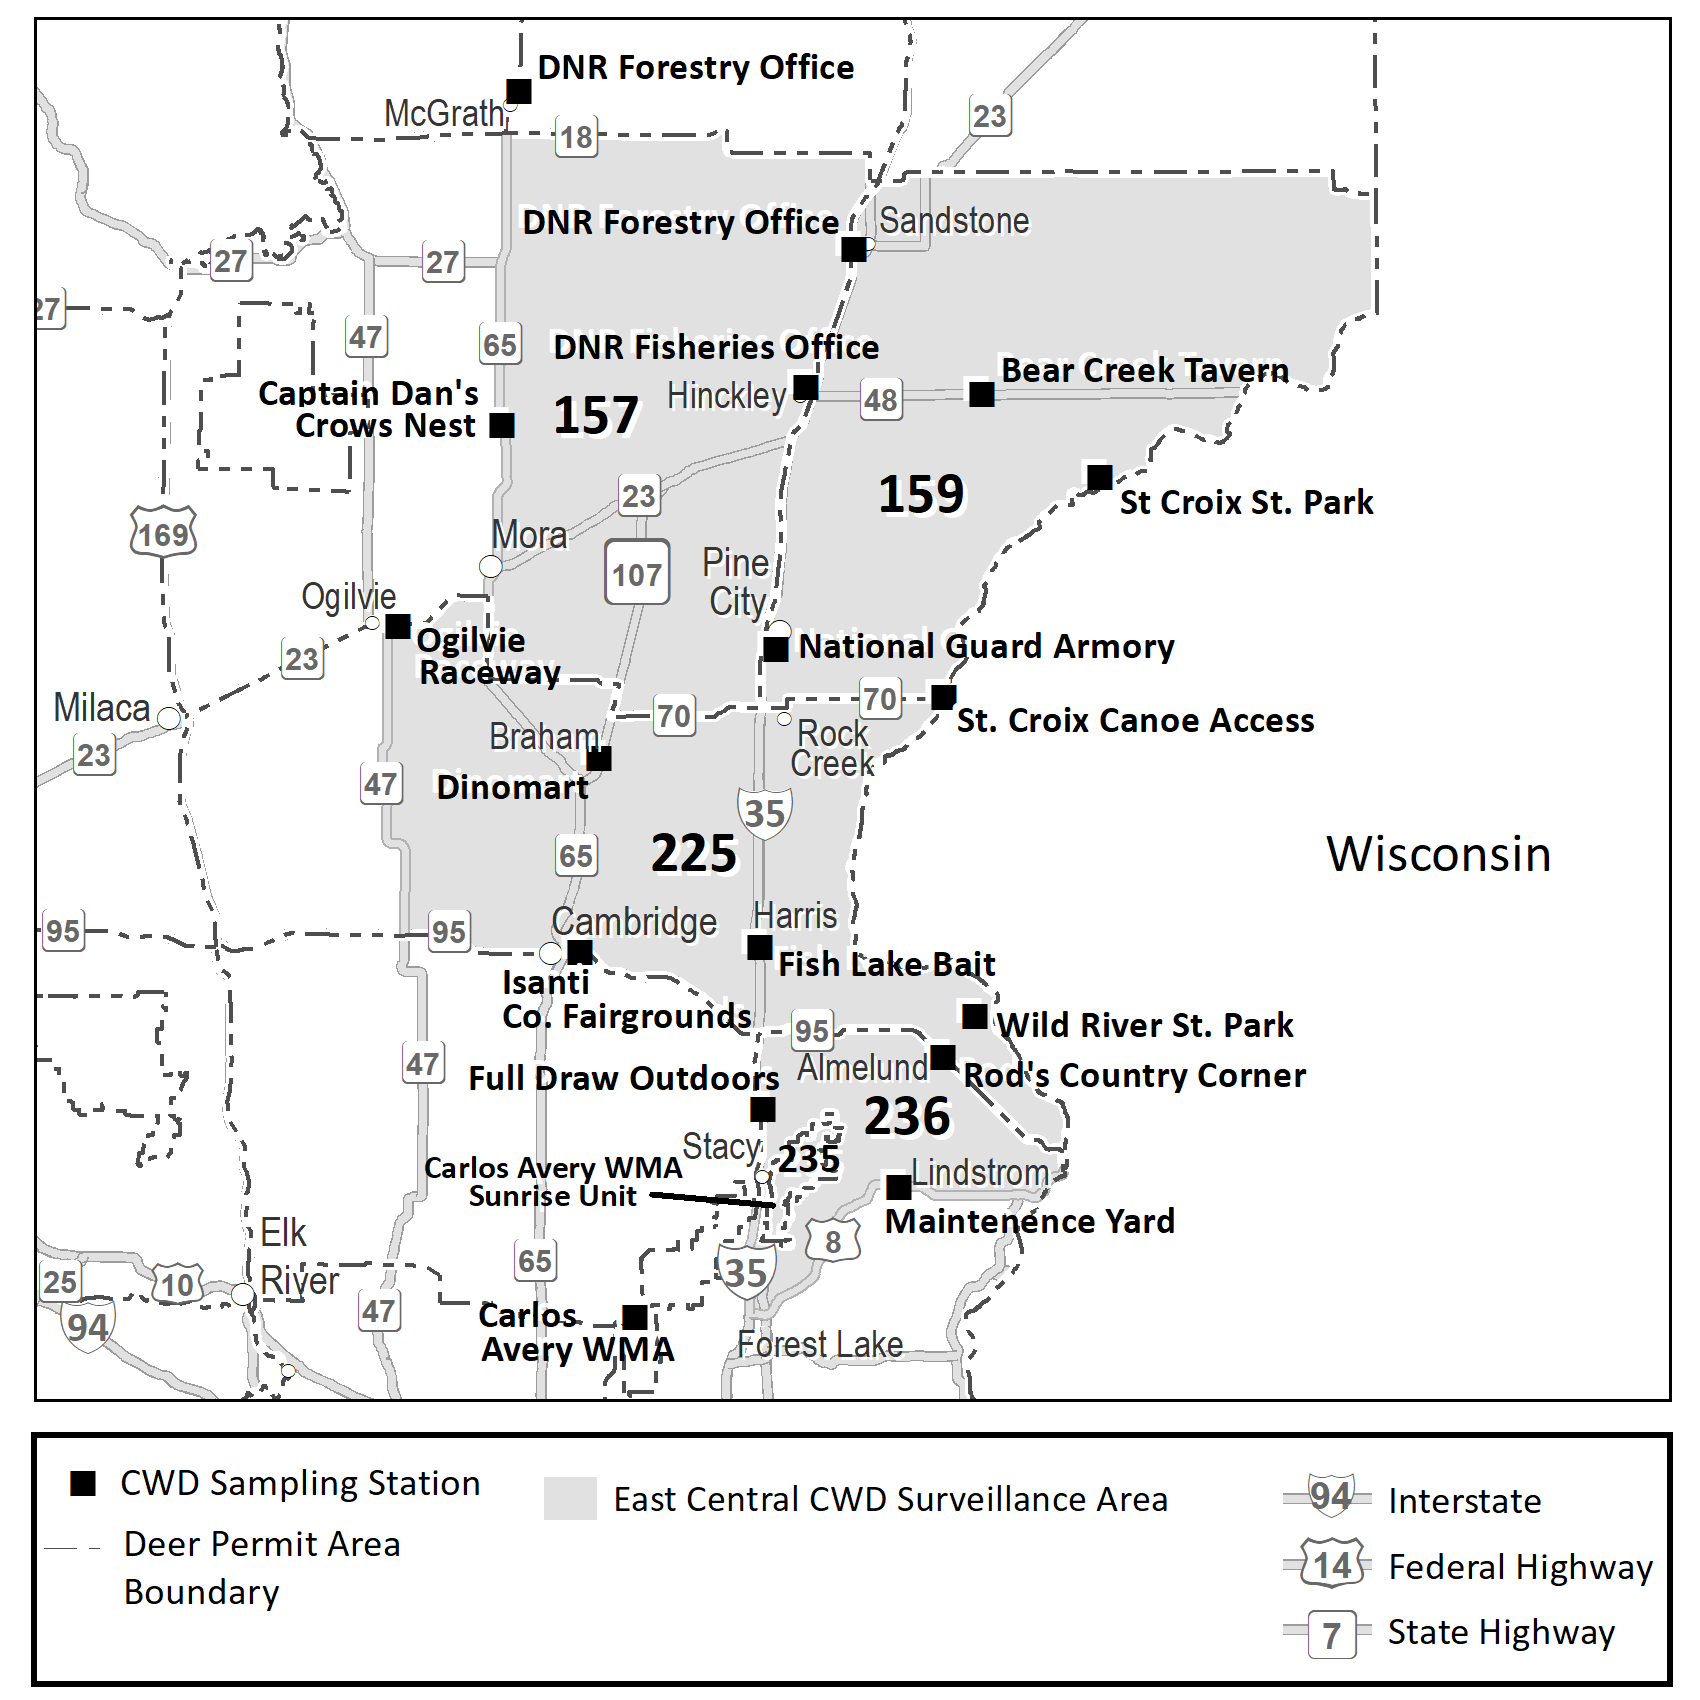 Map highlighting the DPAs in the east-central CWD surveillance area (portions of DPAs 157, 225, 235, 236, and all of DPA 159) and sampling stations in this area.